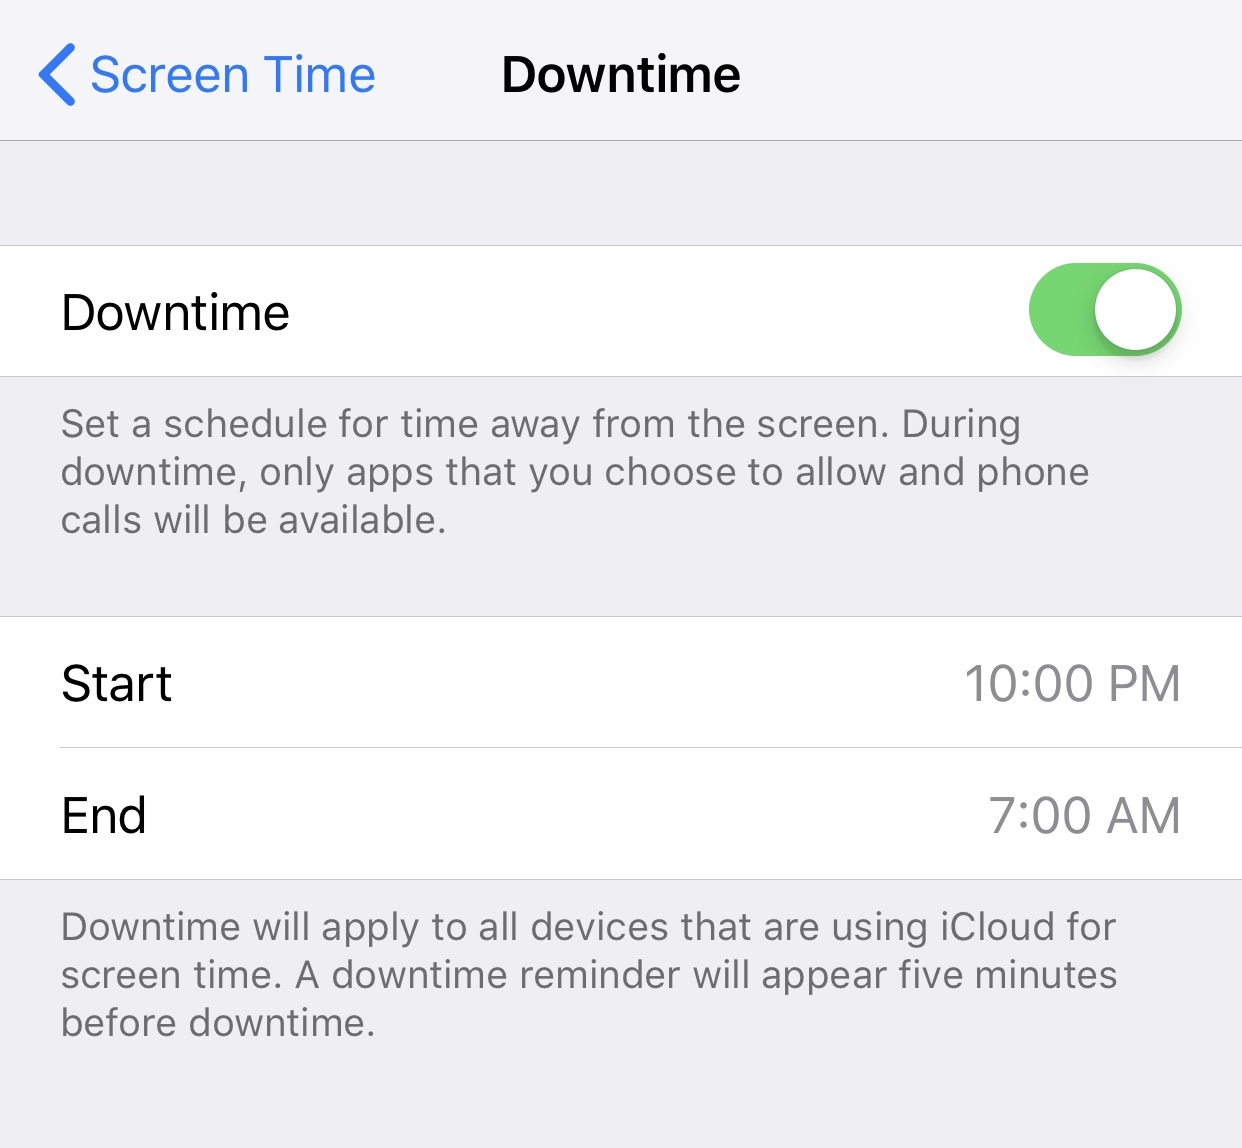 Setting Downtime will only allow the apps you've specified to be opened during this span.